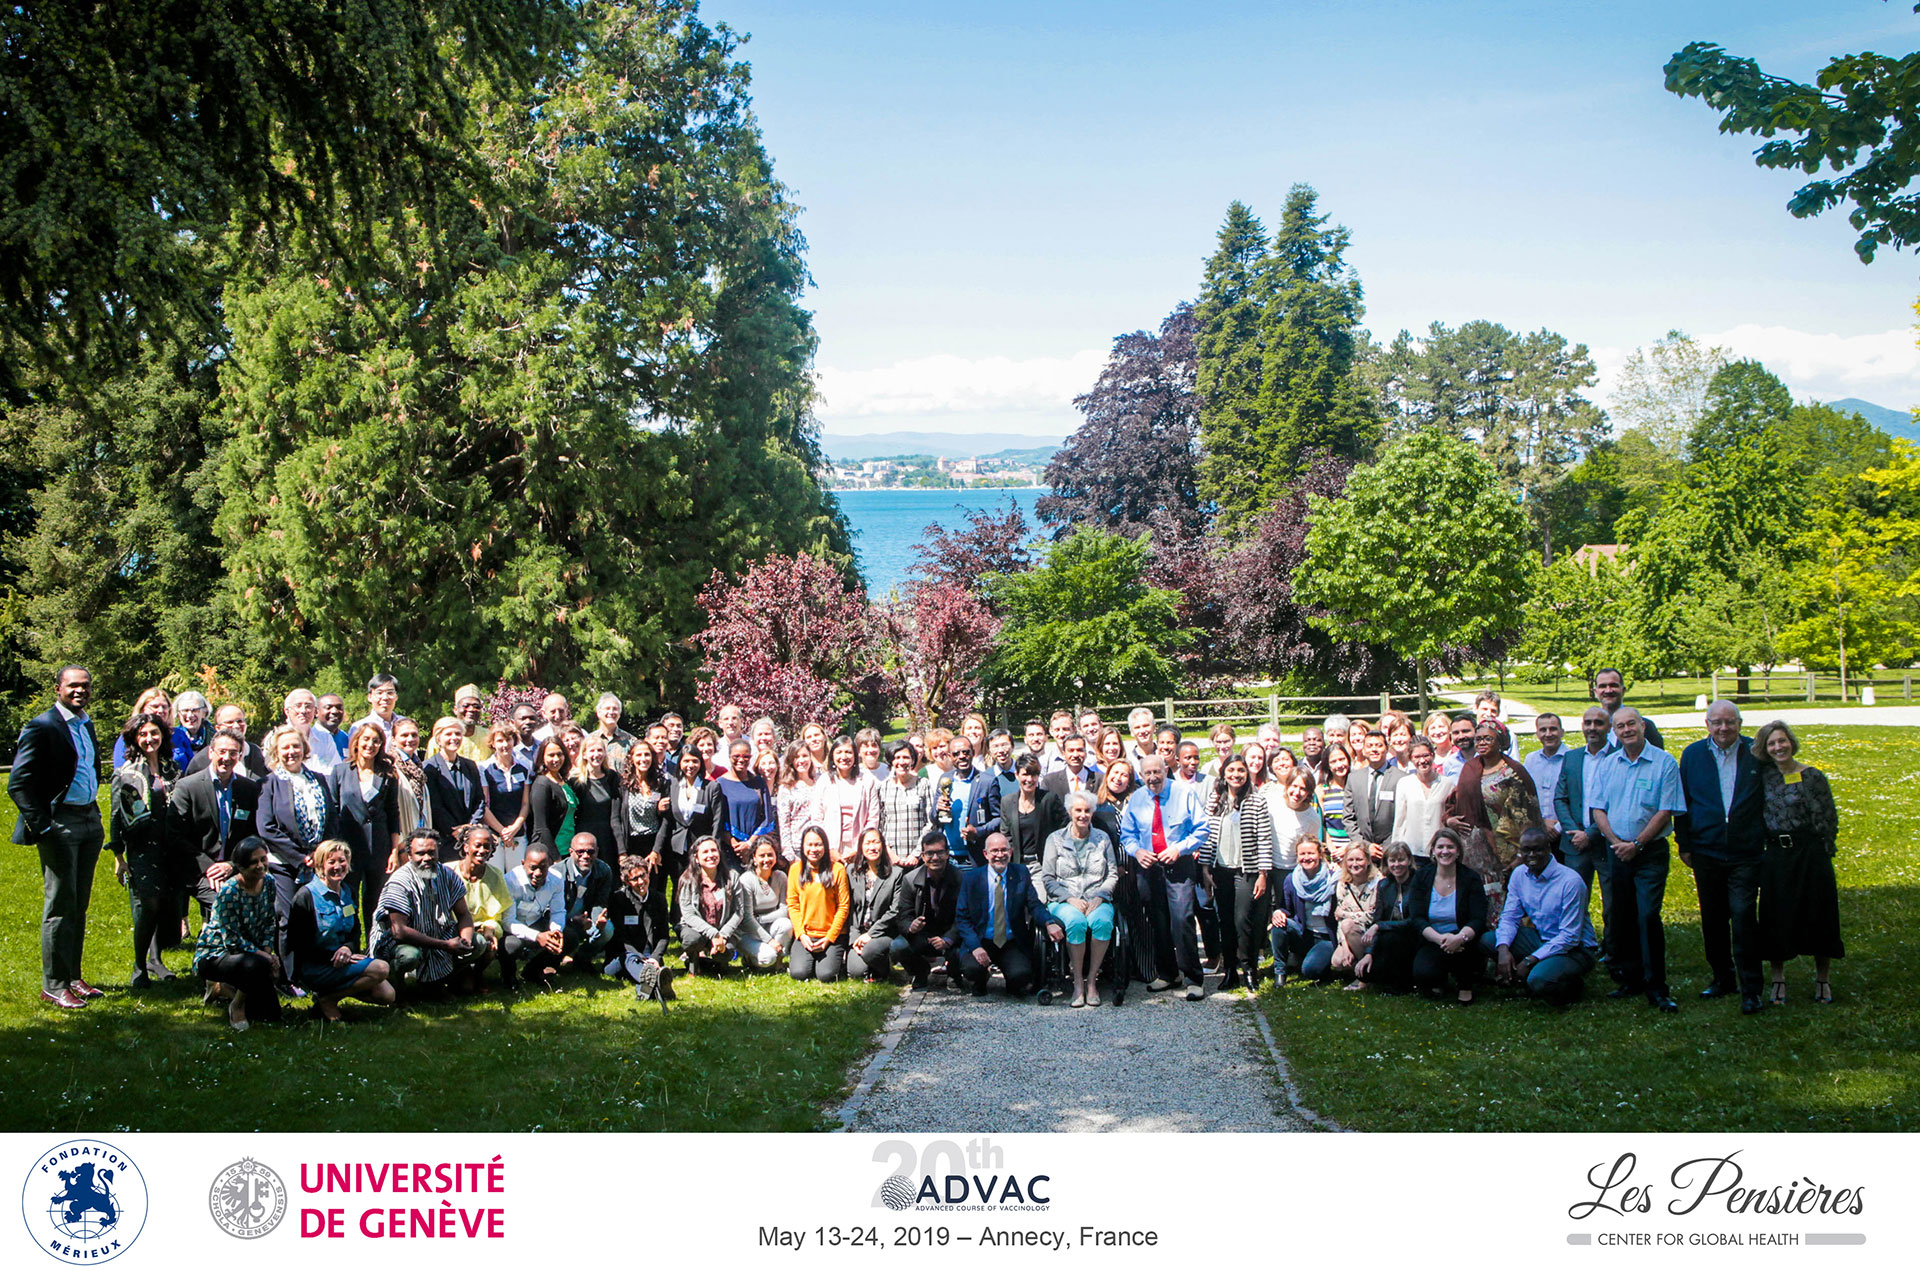 Advac 2019 group